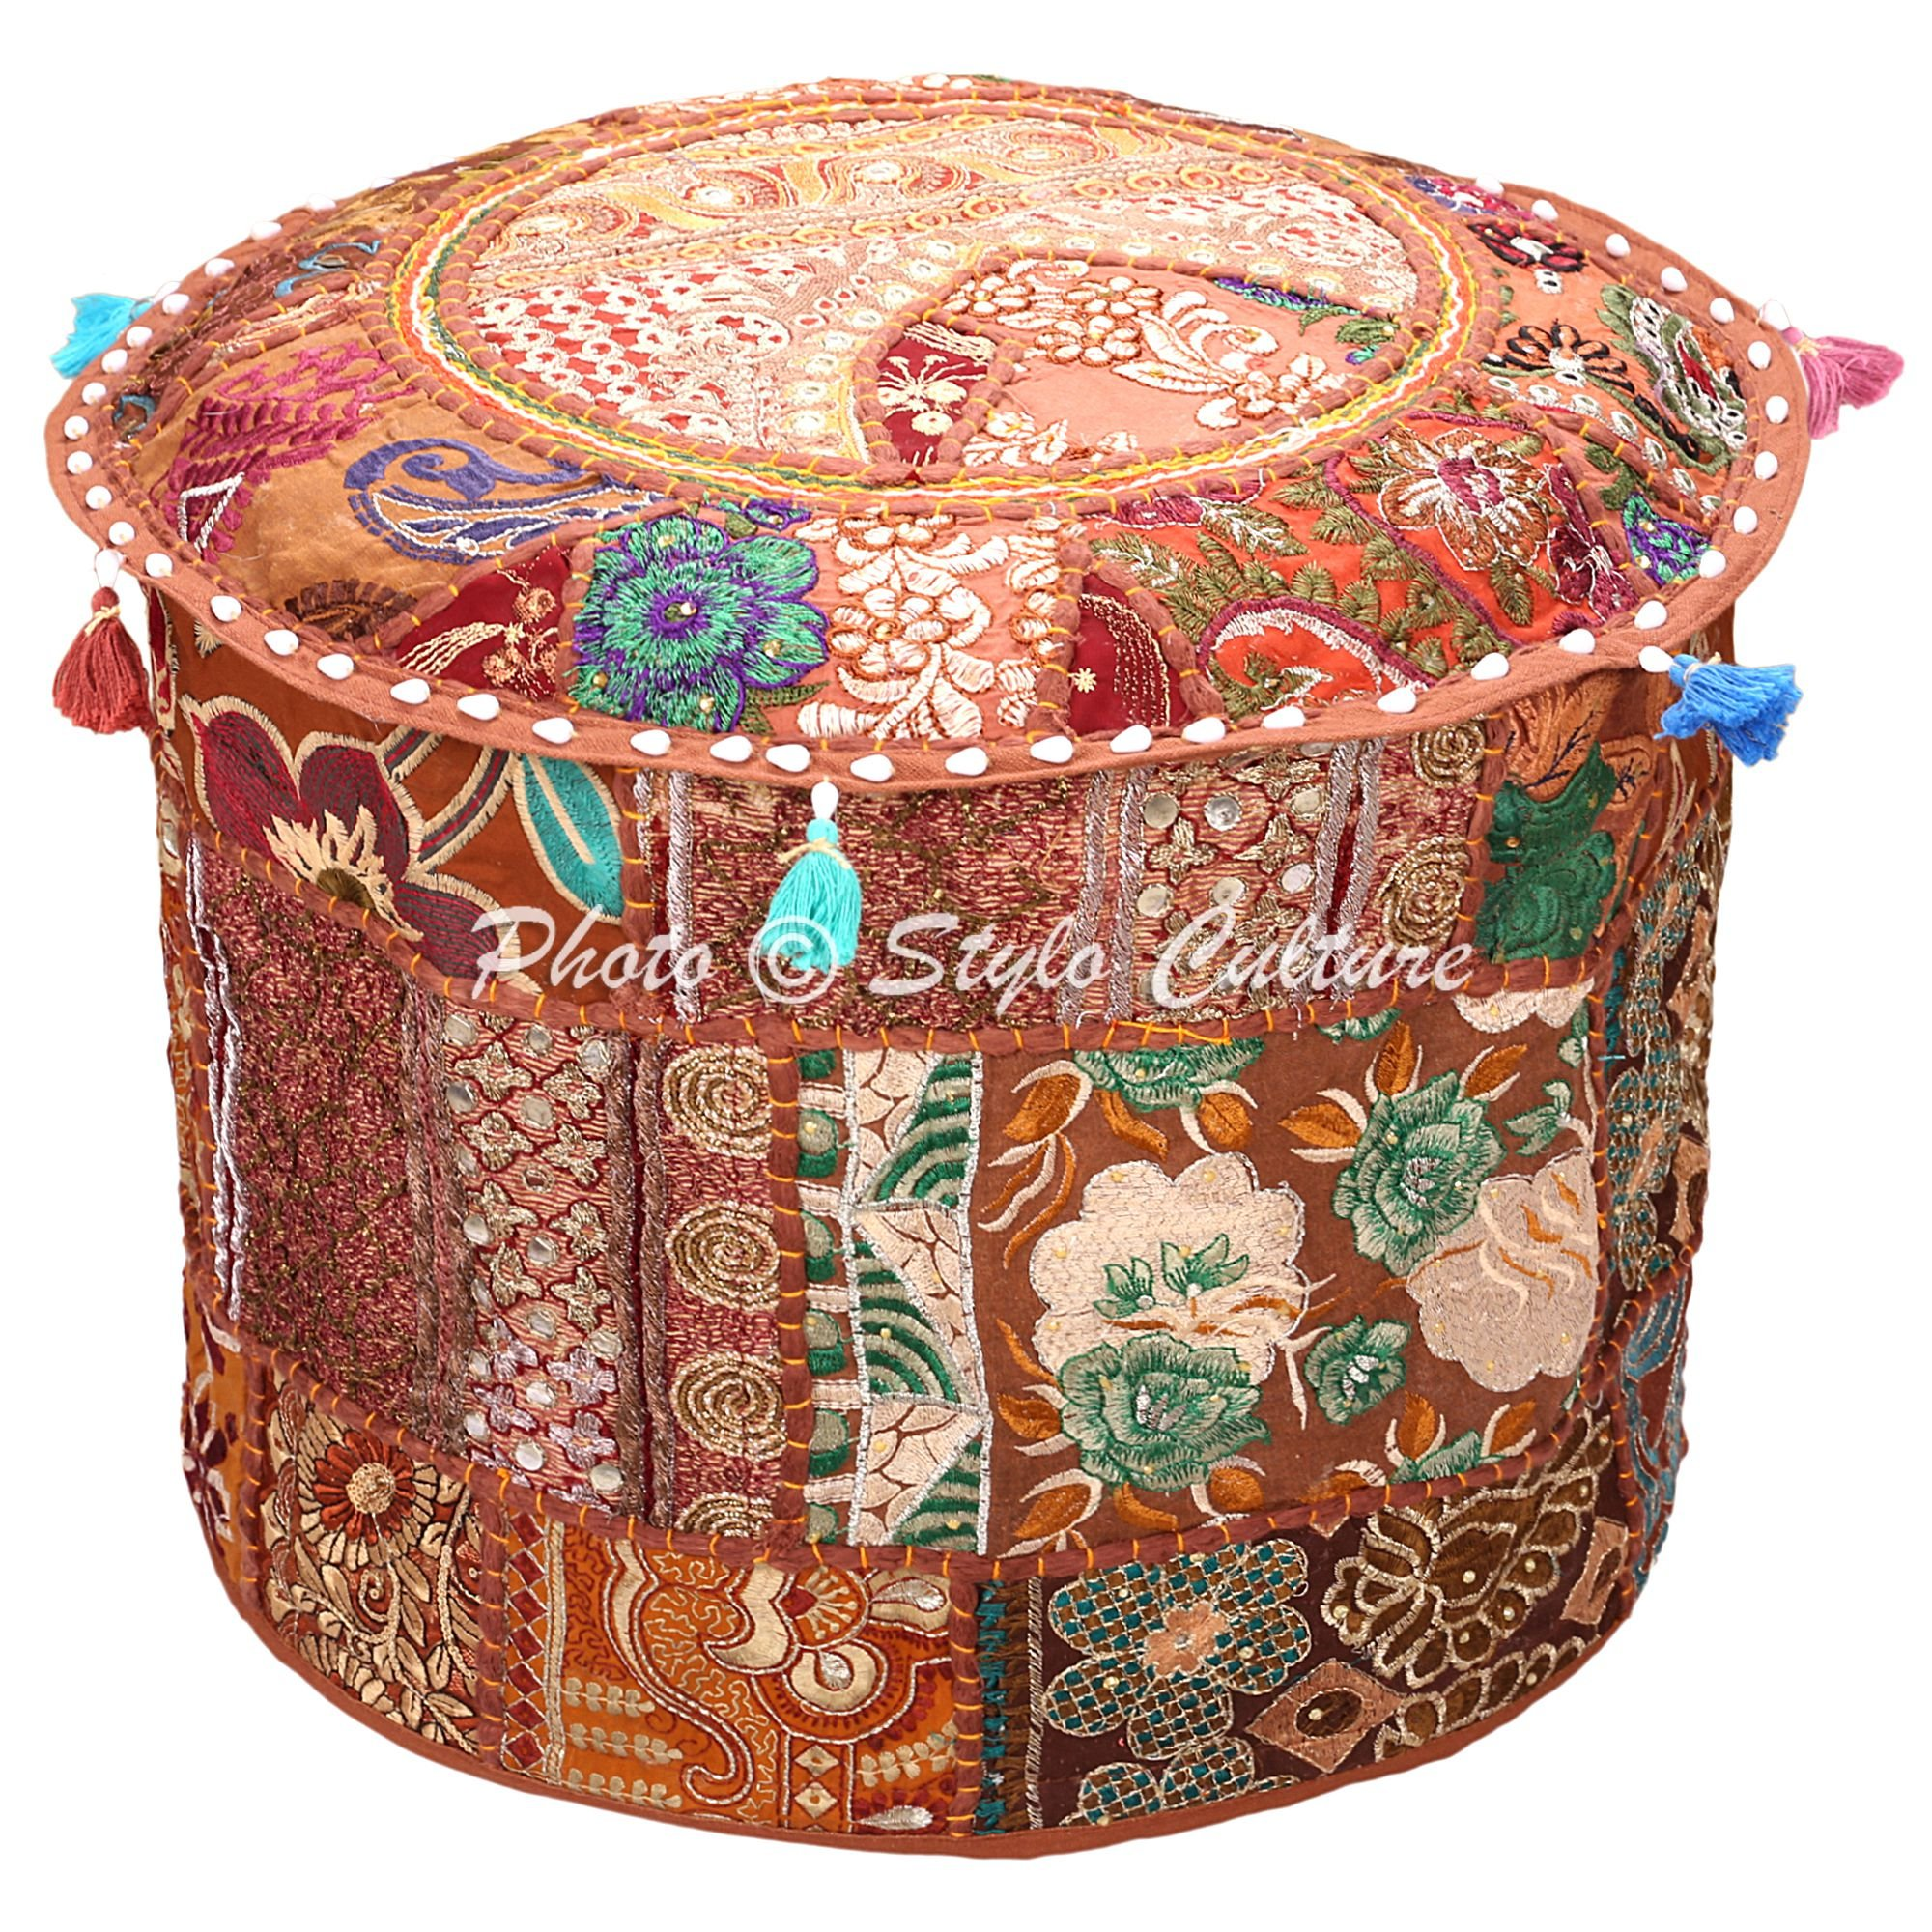 Stylo Culture Ethnic Pouffe Footstool Cover Round Patchwork Embroidered Pouf Ottoman Cover Brown Cotton Floral Traditional Furniture Footstool Seat Puff Cover (18x18x13)